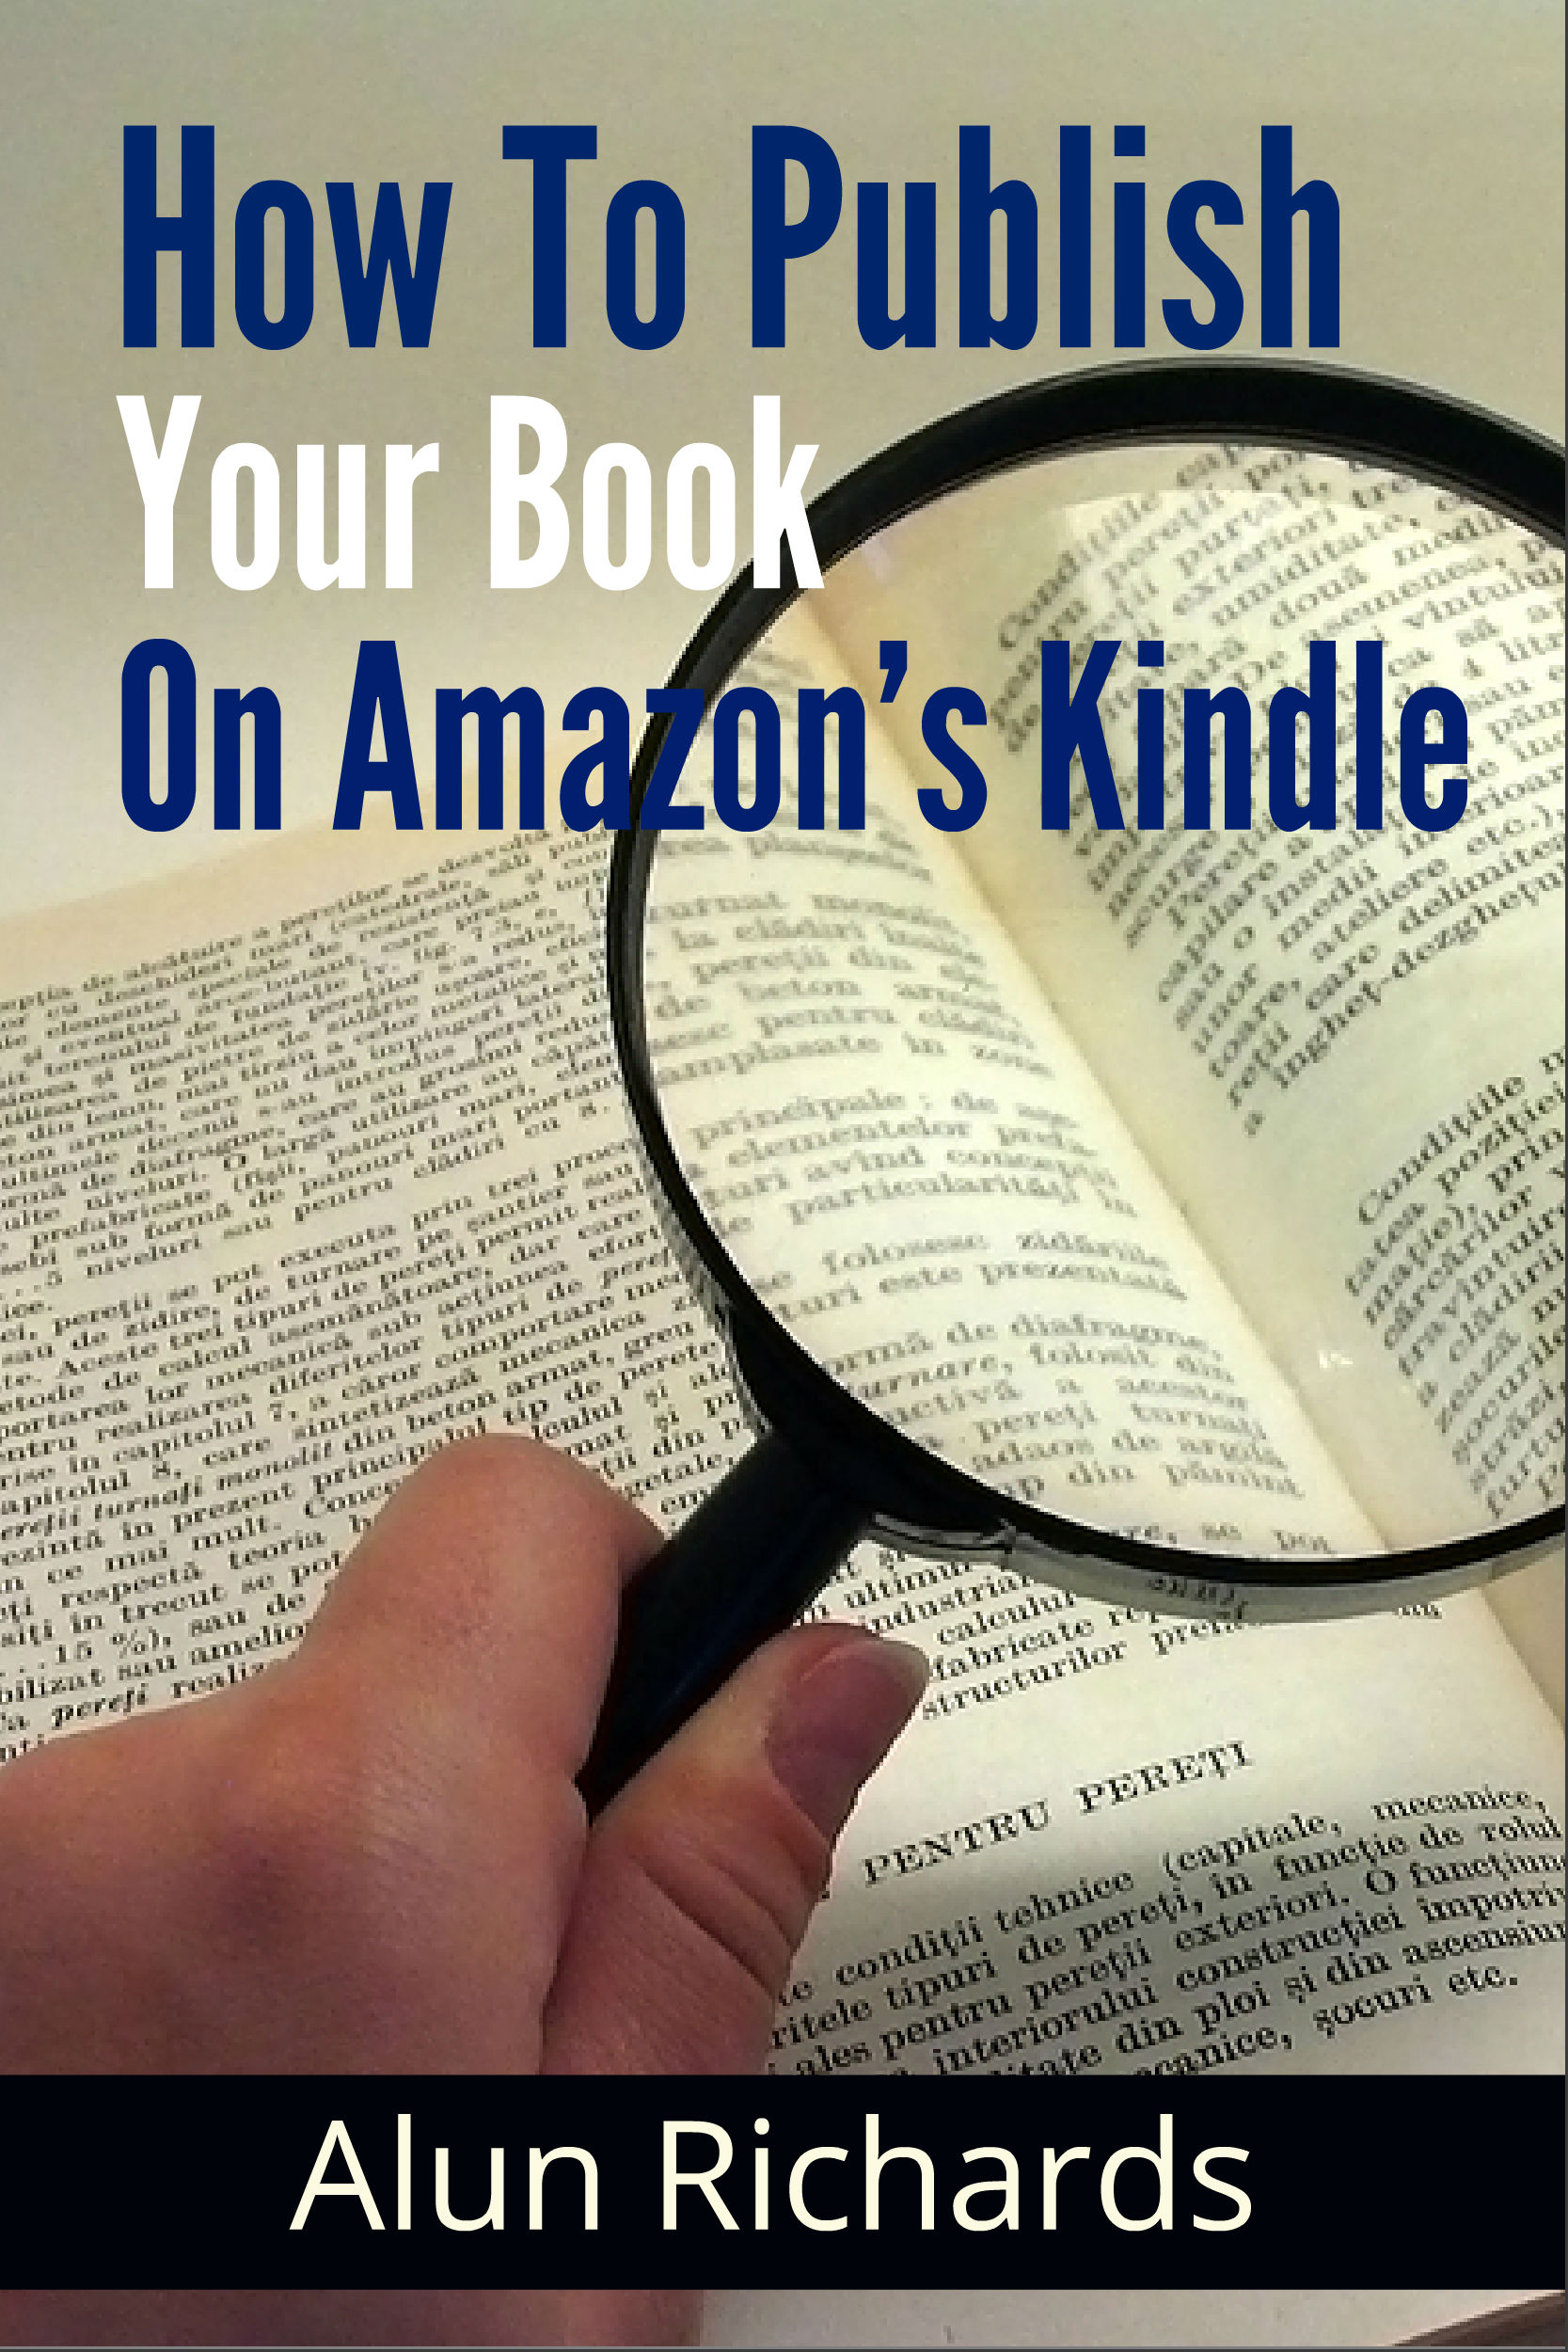 How To Publish Your eBook On Amazon's Kindle